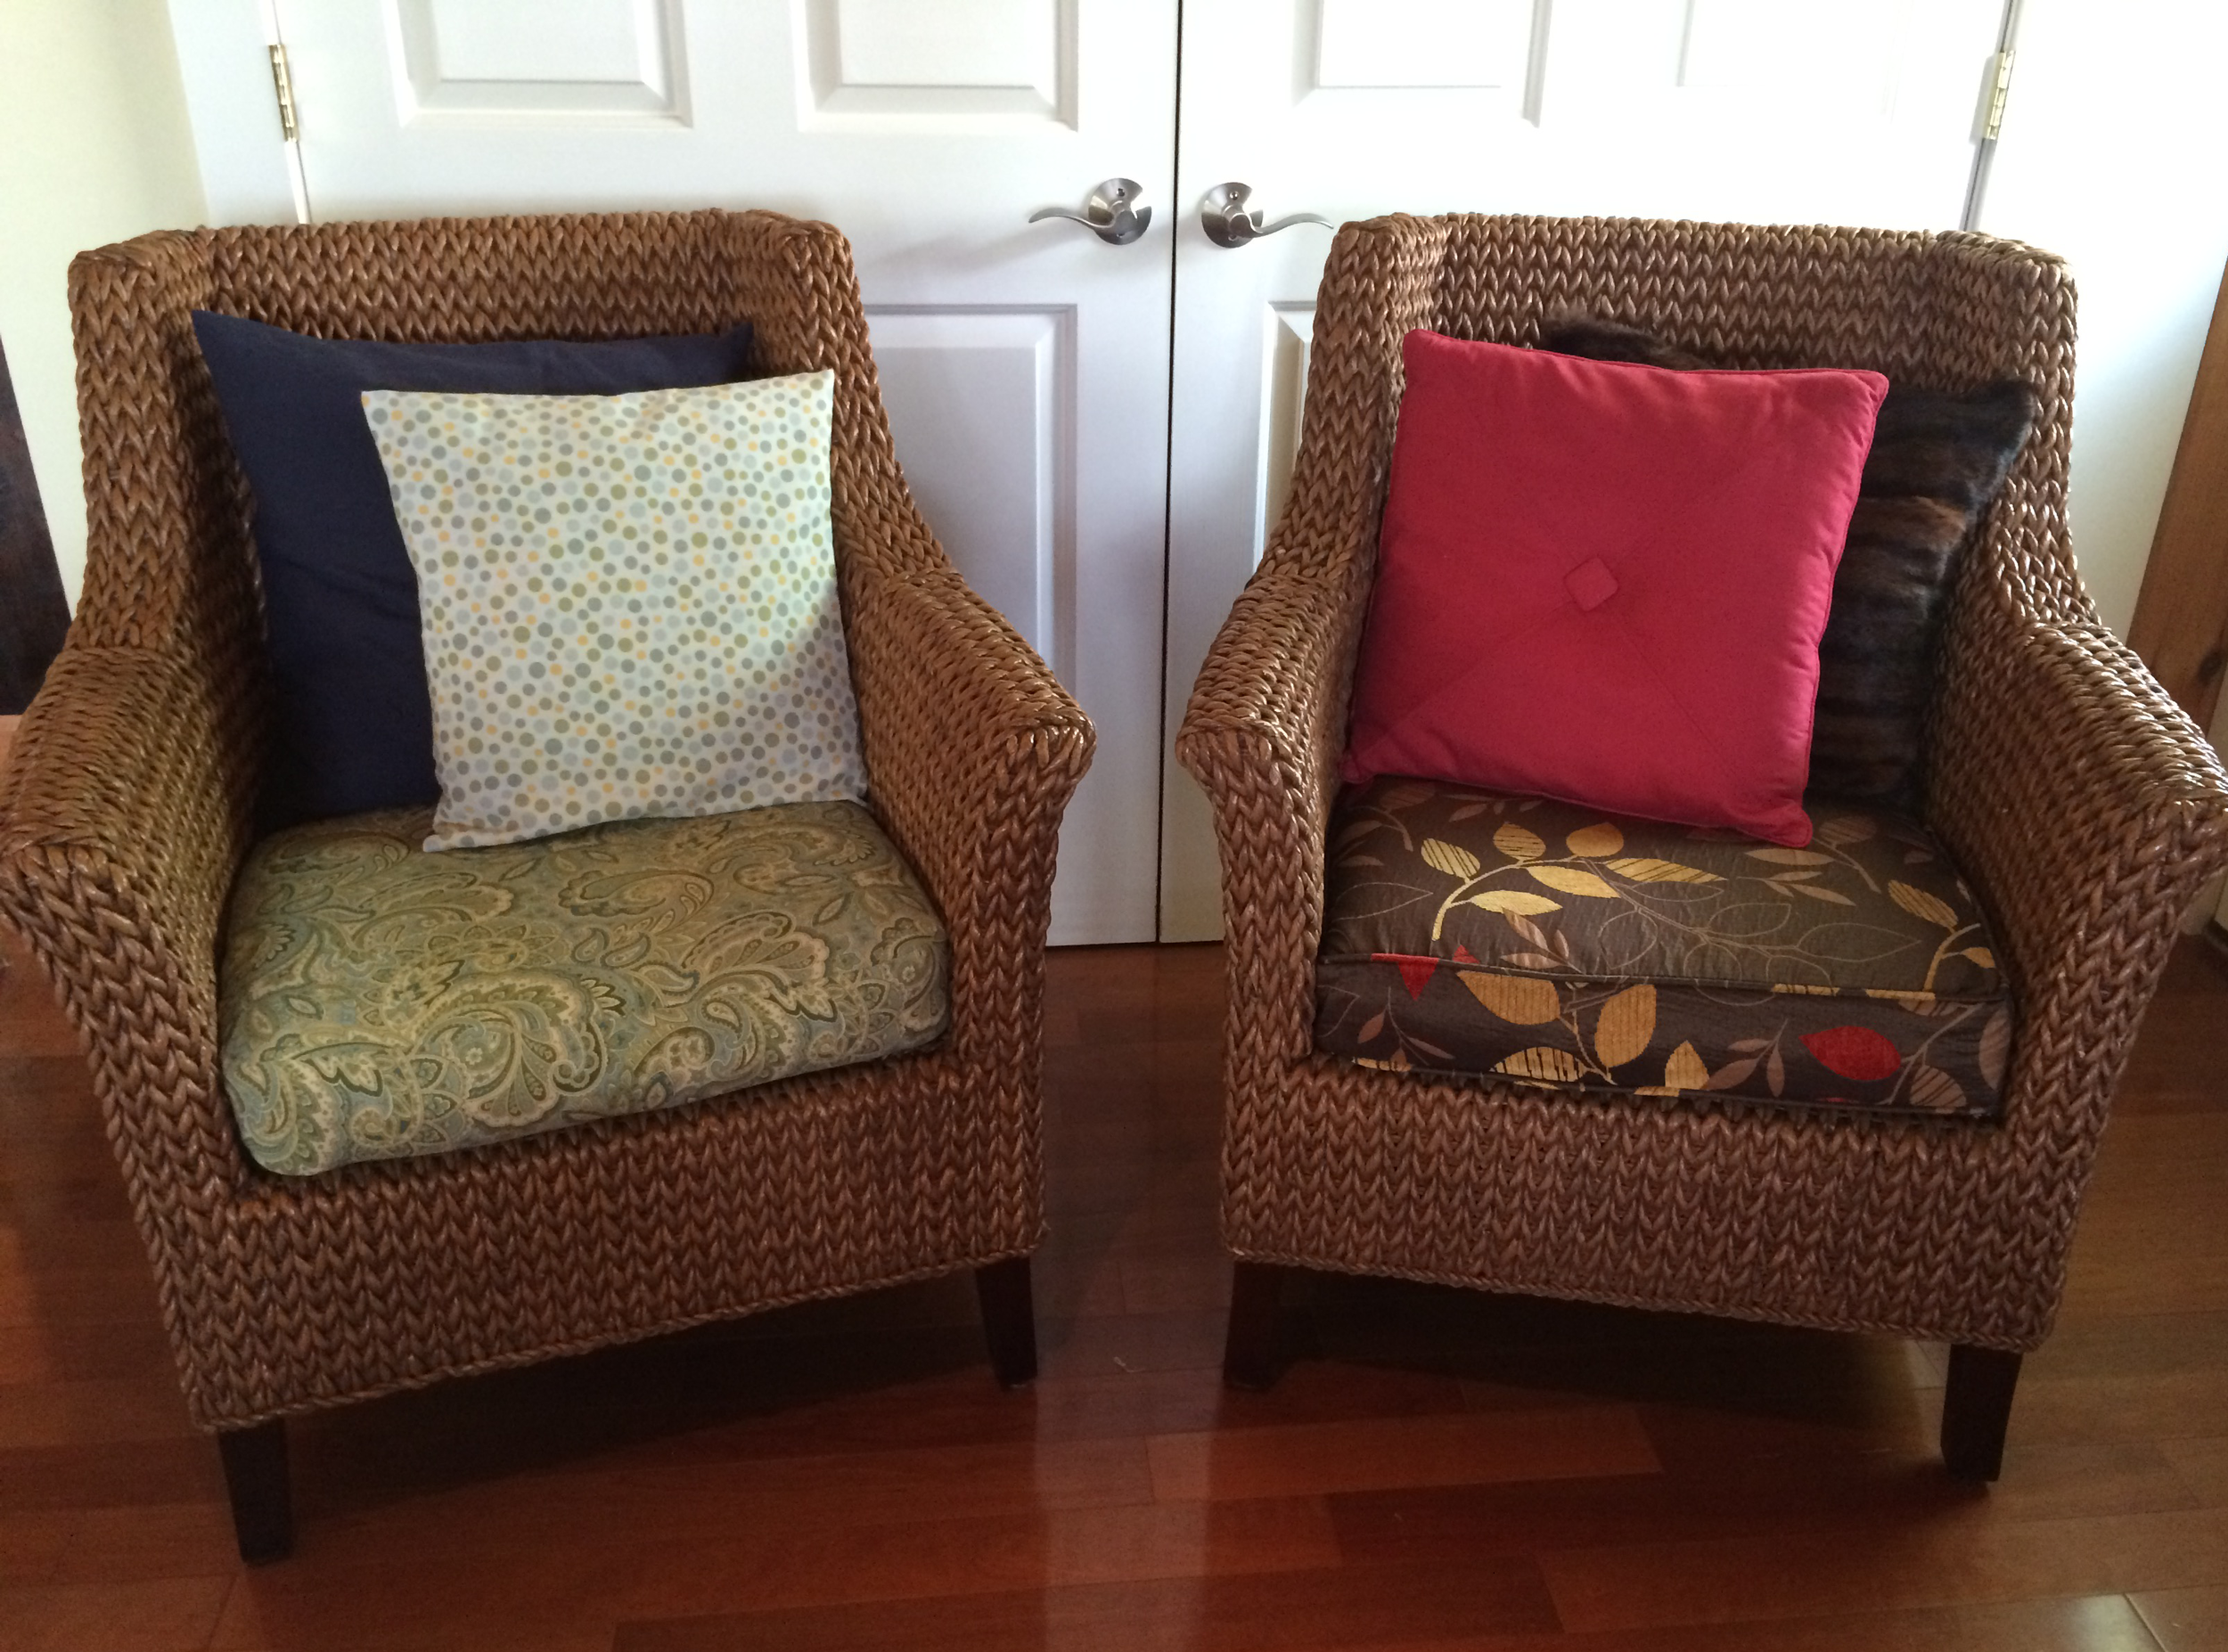 Same chairs different color palettes! Spring/summer on the left with fall/winter on the right.